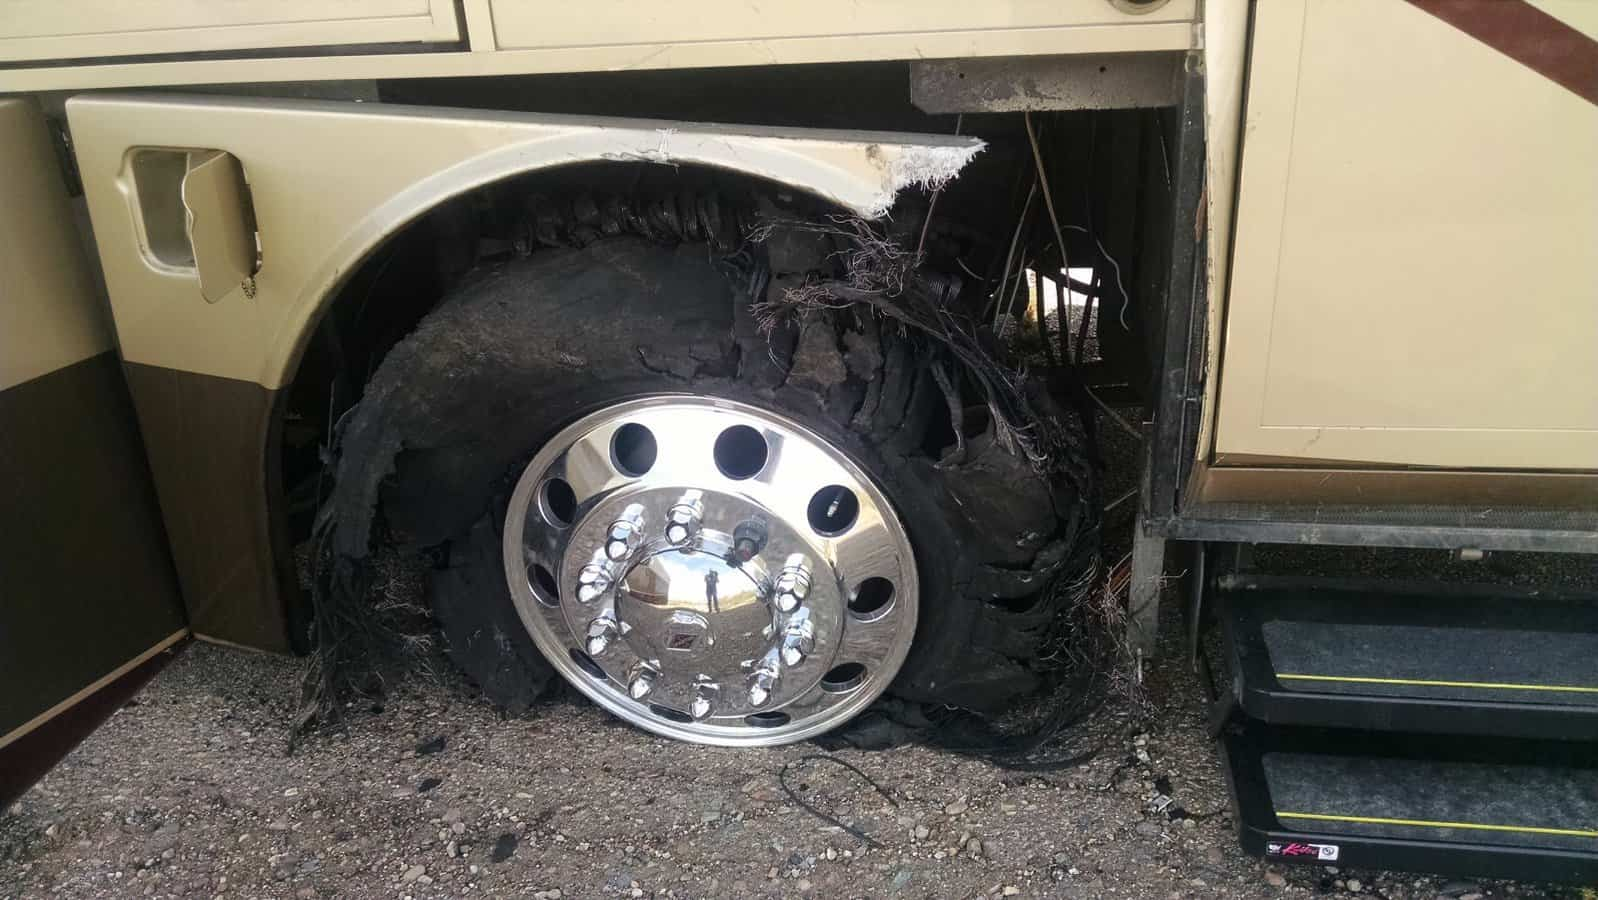 Shredded front tire on a motorhome.